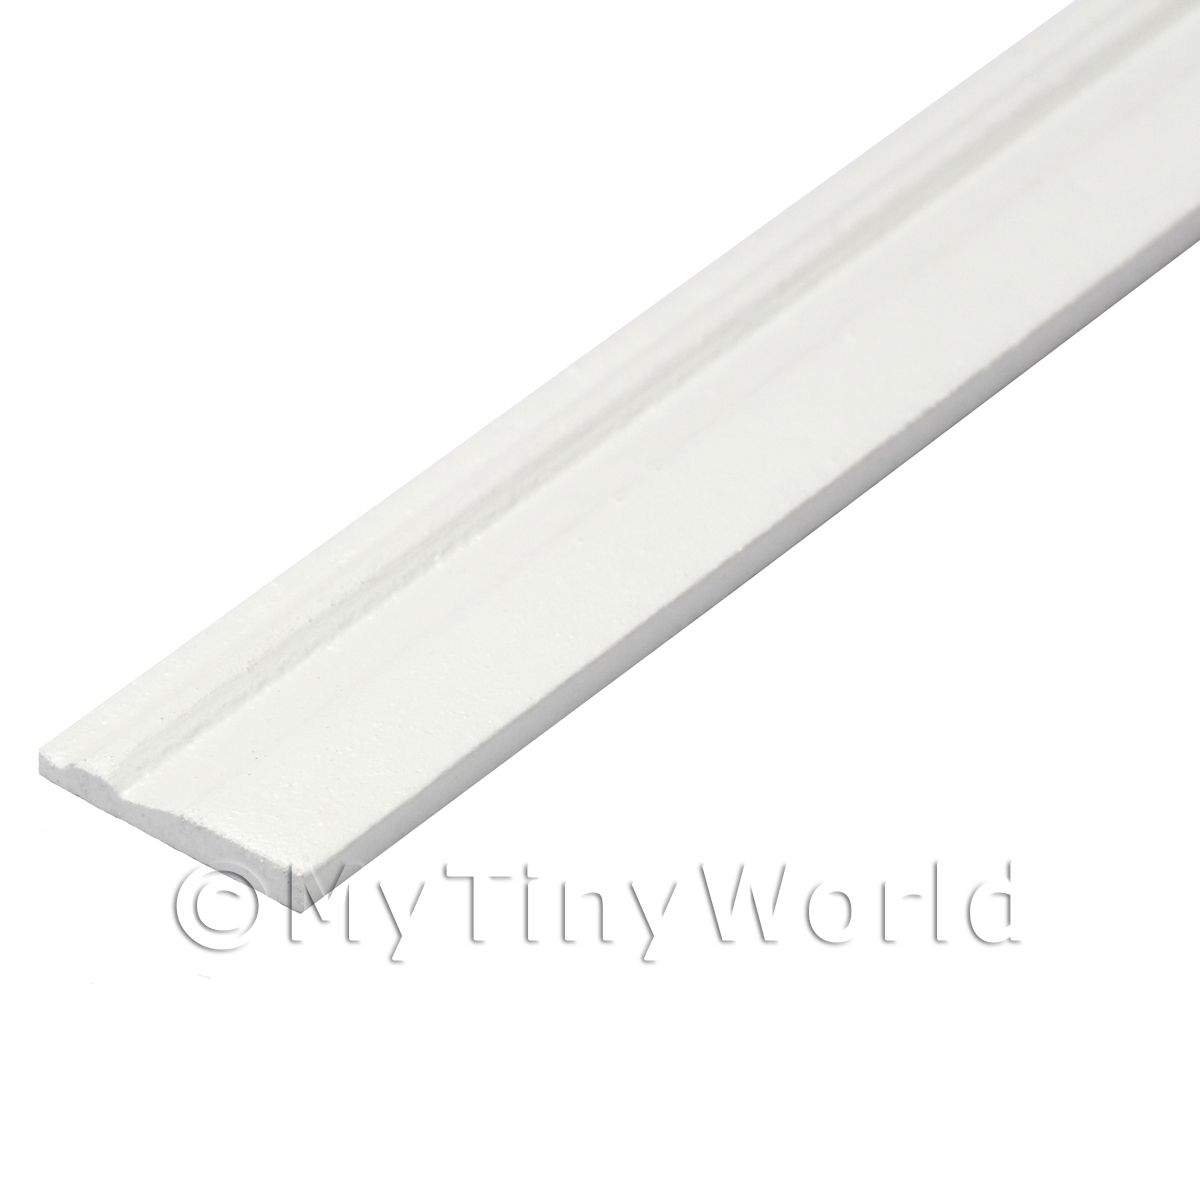 Dolls House Miniature White Painted 15mm Wood Skirting Board (Style 6